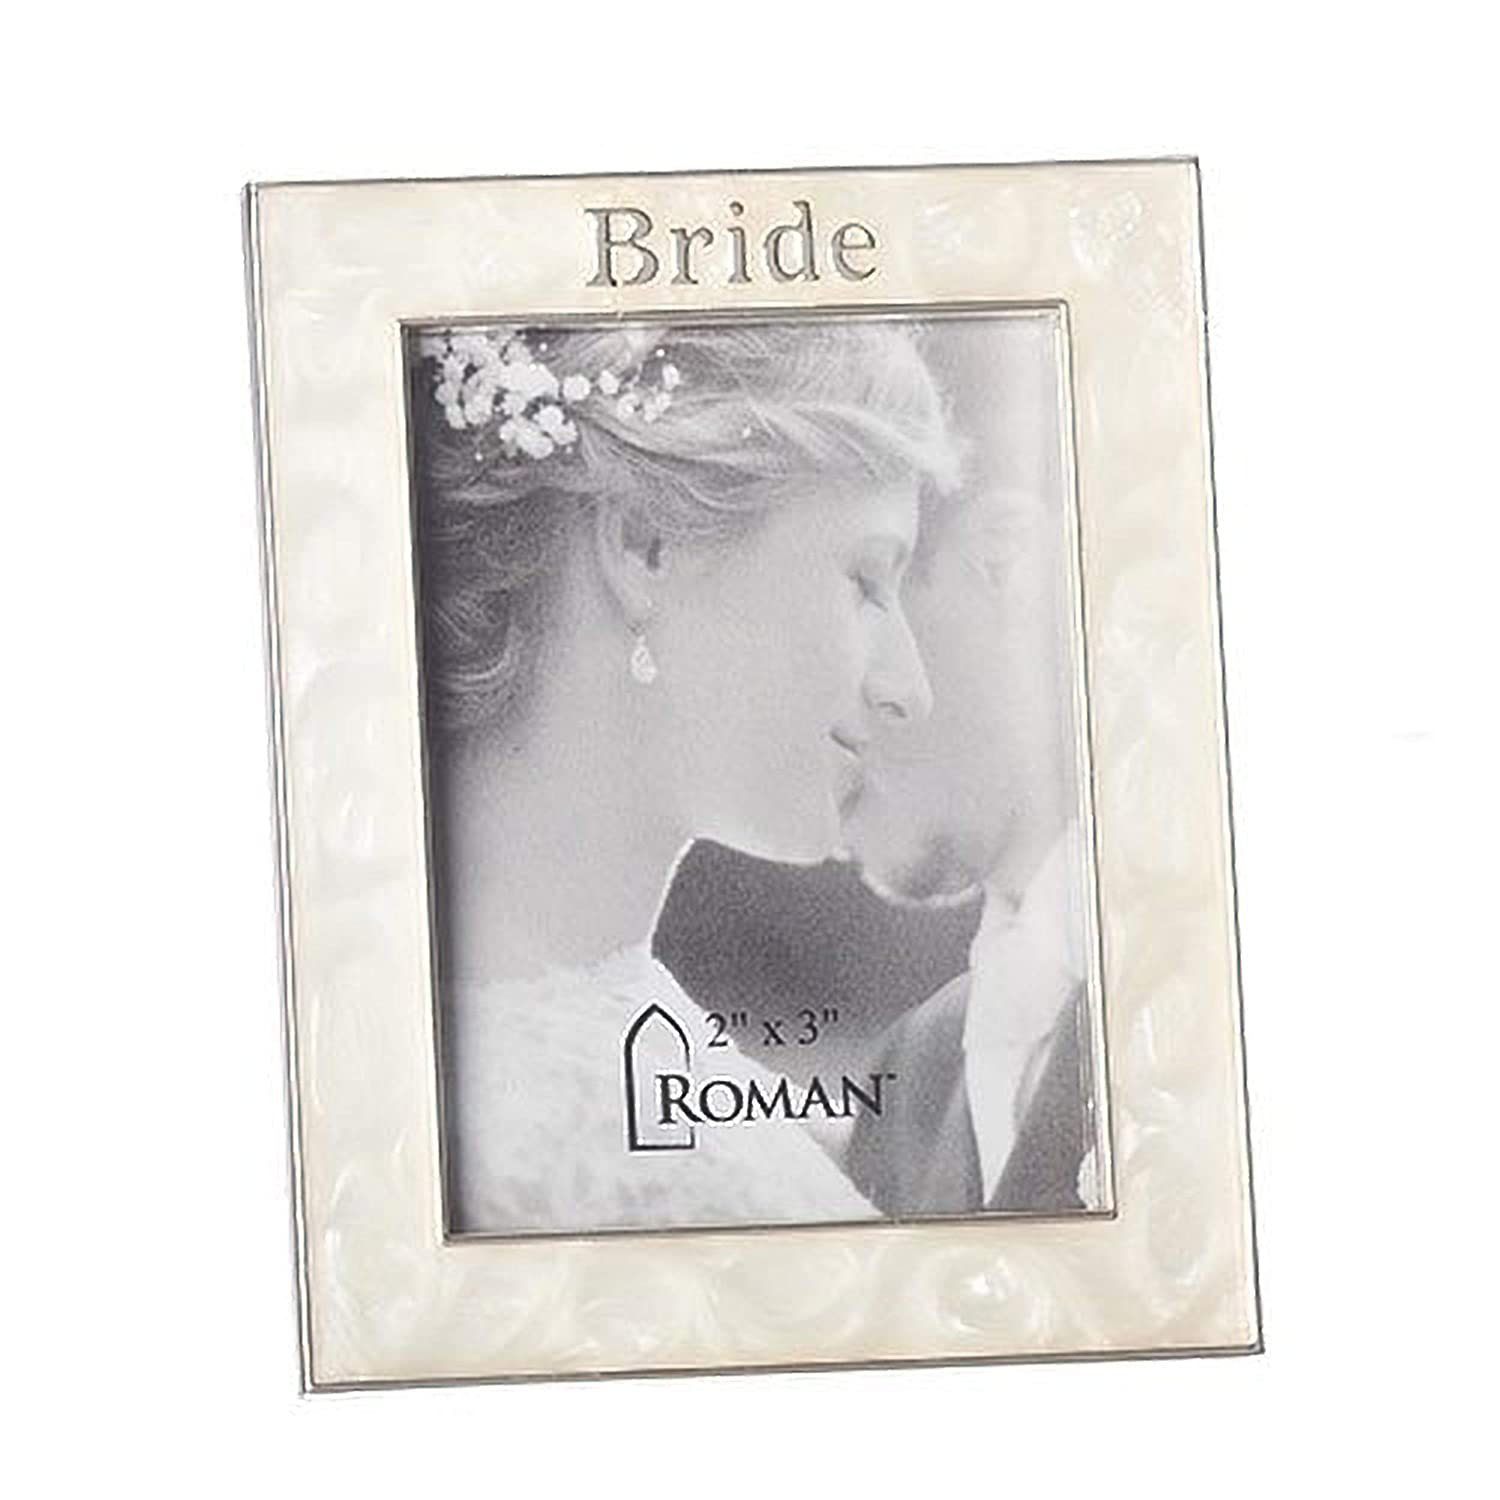 Bride Swirled Ivory With Muted Silver Tone Border 3 x 3.5 Zinc Alloy Photo Frame